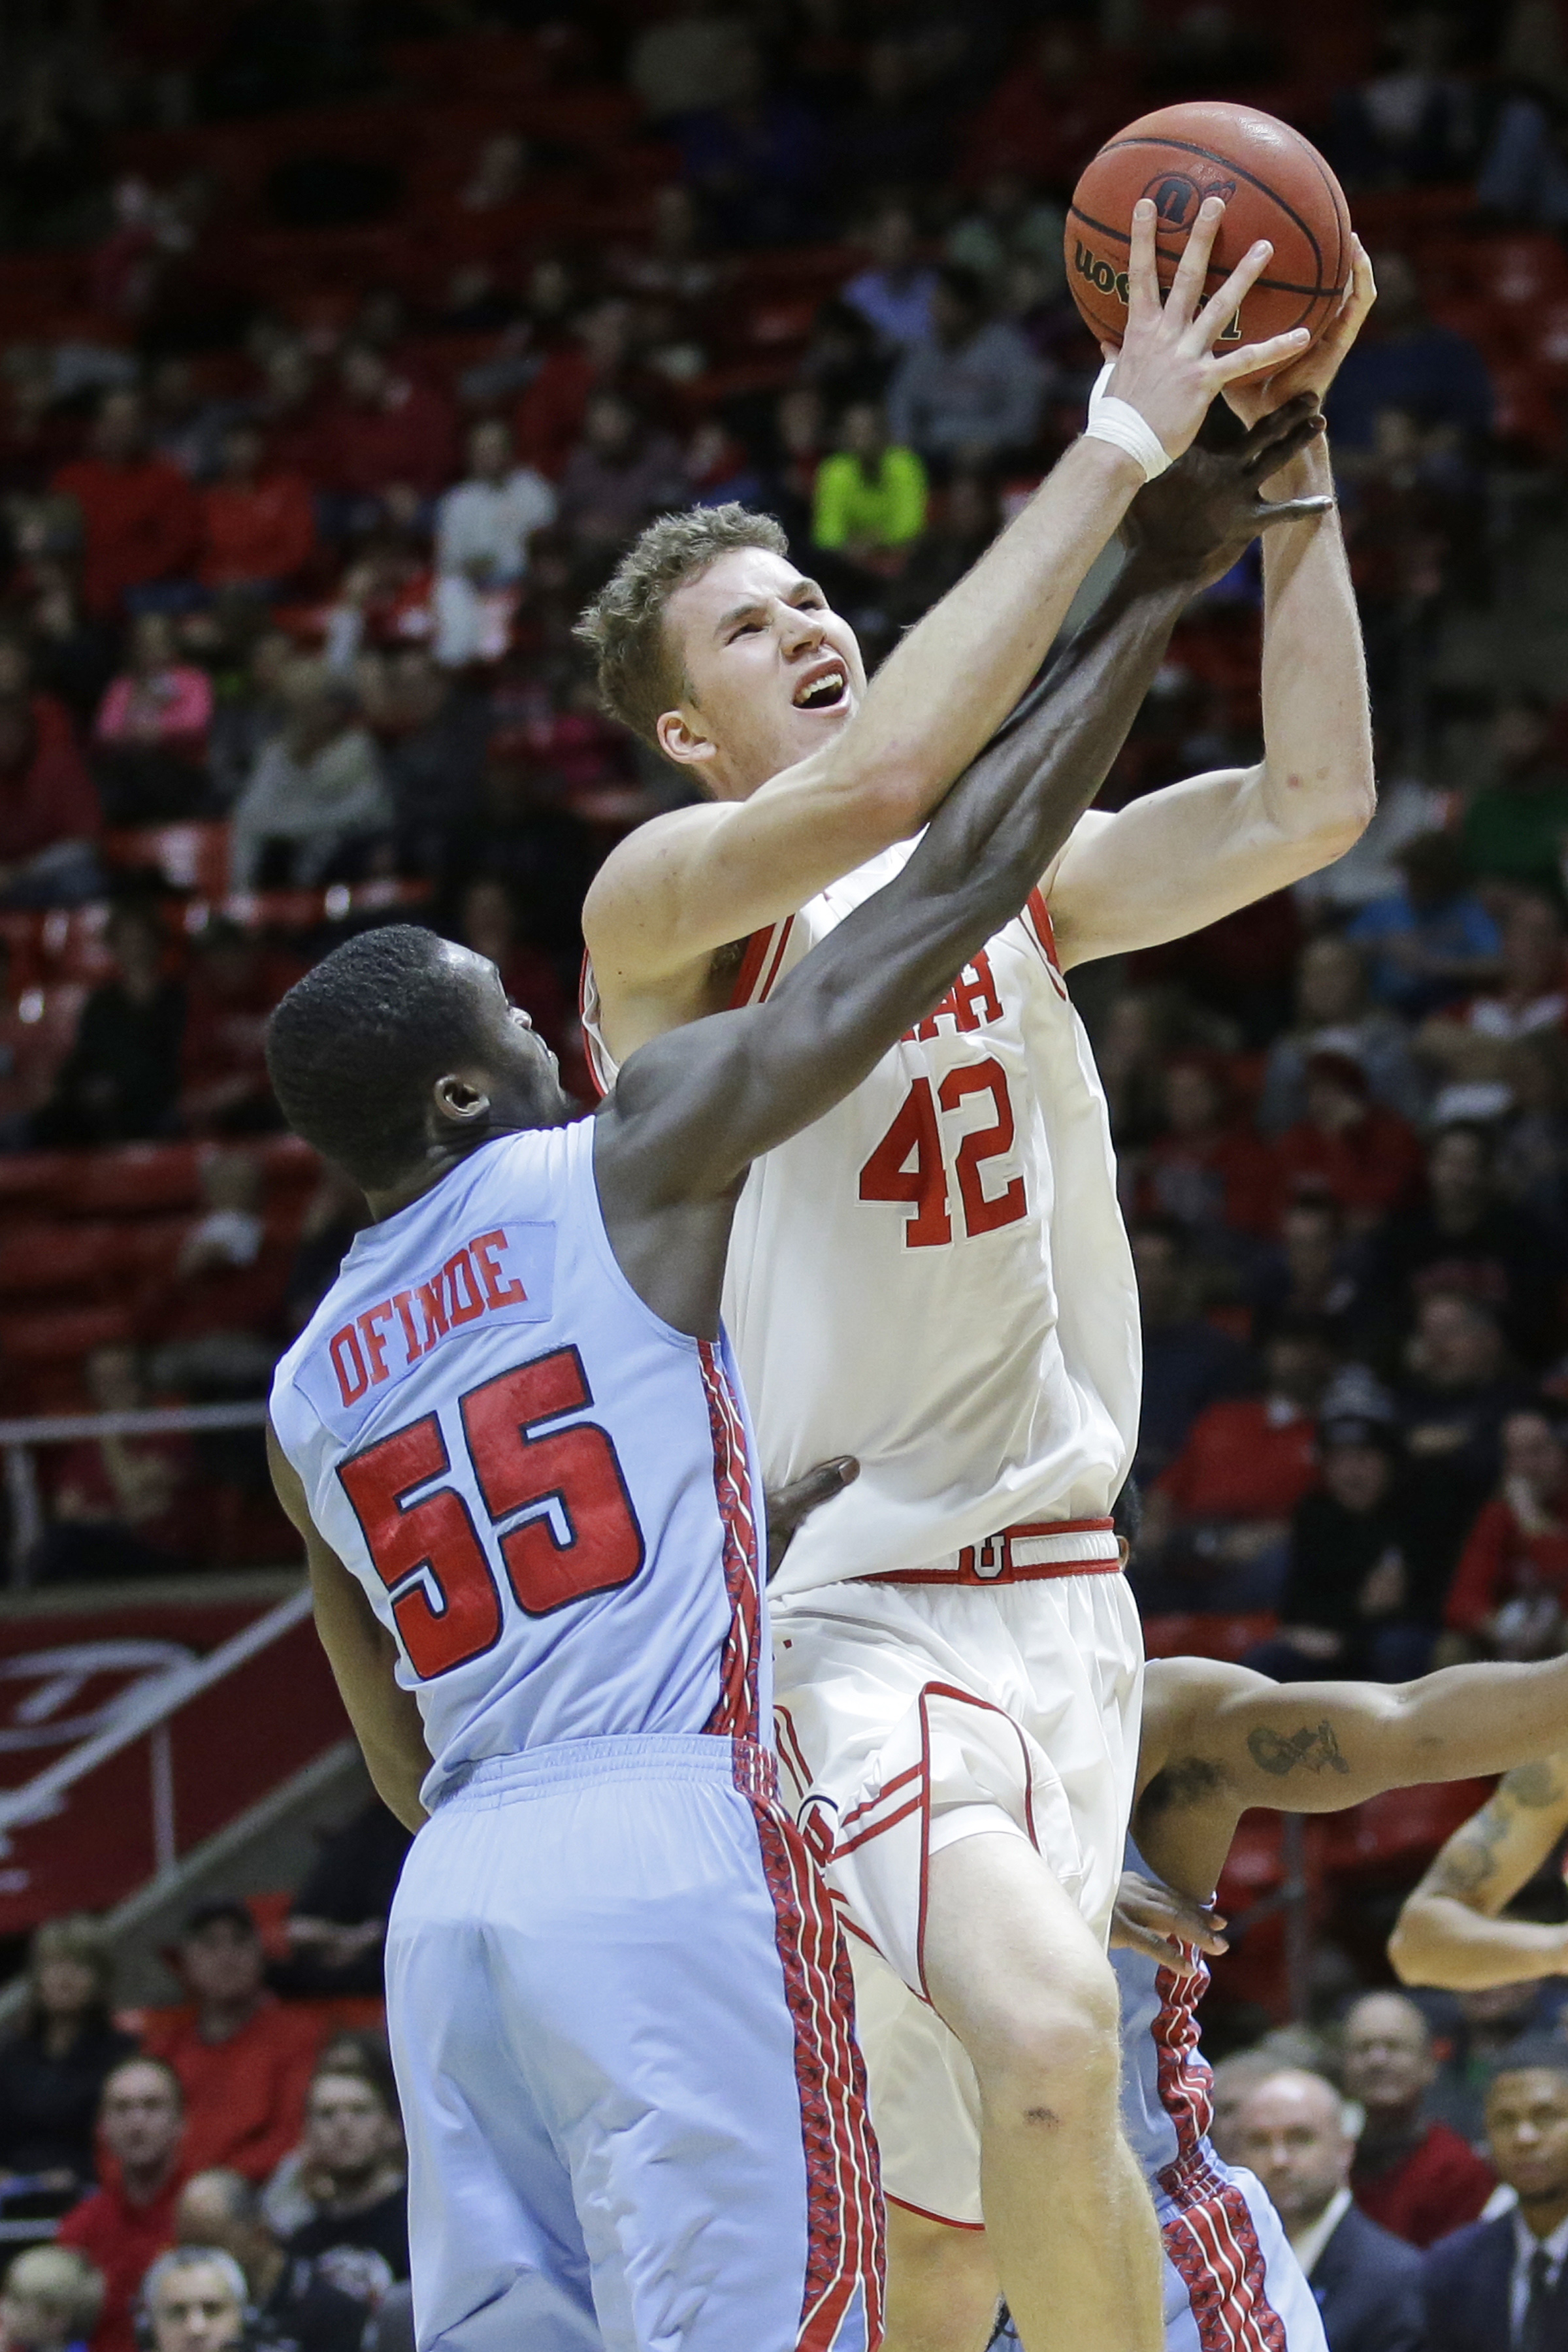 Utah forward Jakob Poeltl (42) goes to the basket as Delaware State center Demola Onifade (55) defends during the second half of an NCAA college basketball game Tuesday, Dec. 22, 2015, in Salt Lake City.  (AP Photo/Rick Bowmer)